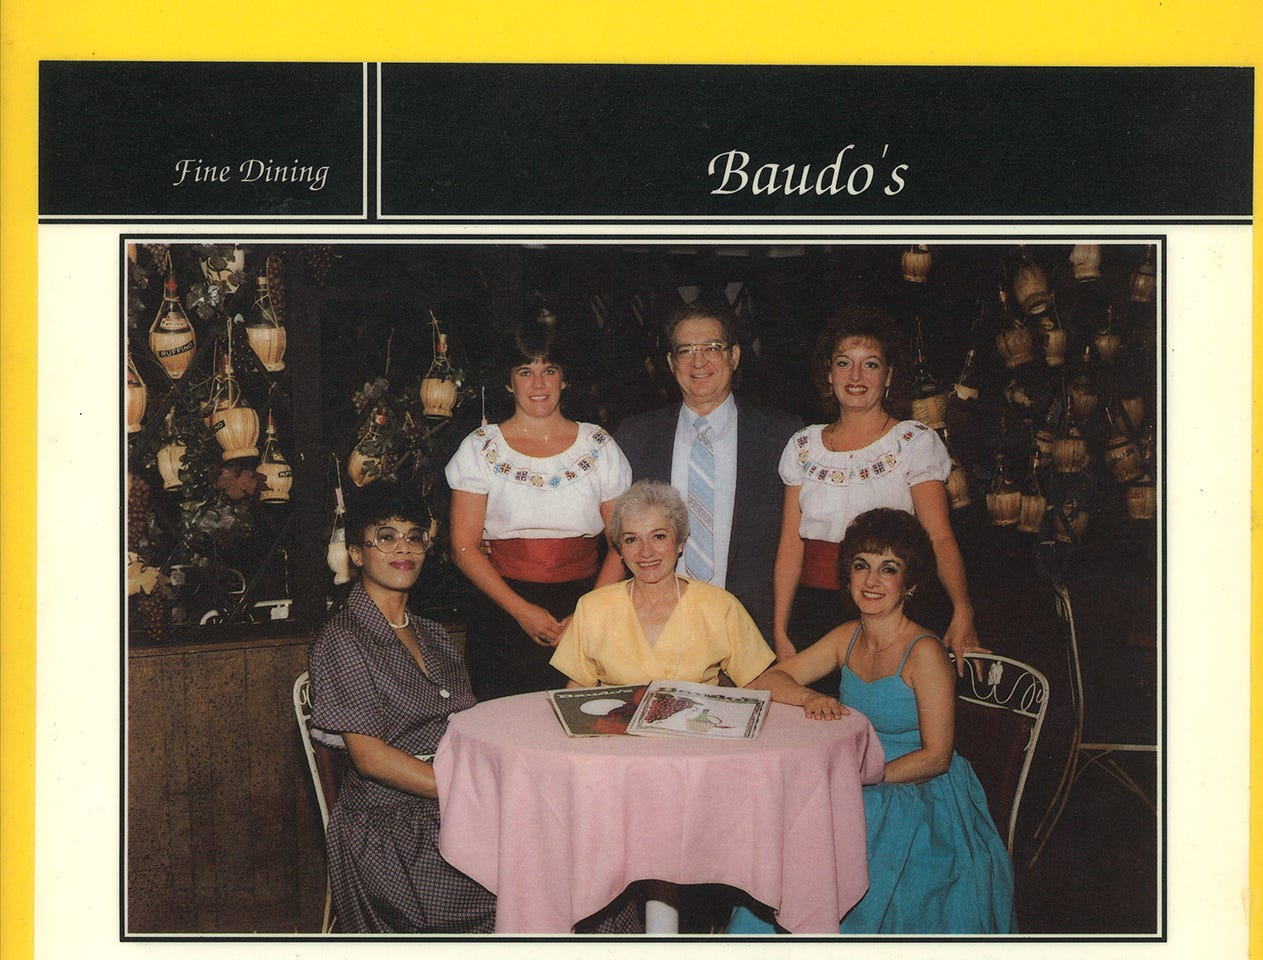 """A picture of Baudo's Restaurant staff is included in an """"Unmistakably Jackson"""" feature story in Jackson, Tenn. Helen Echoles, bottom left, started working for the Baudo family restaurant as a dishwasher at their Hollywood Drive location and later became their kitchen manager of several years. Clockwise from left: Margie Oswald, waitress of 30 years, Basil Baudo, Rosie Starfill, waitress of more than 40 years, Sharon Baudo Smith, Helen Baudo, founder."""